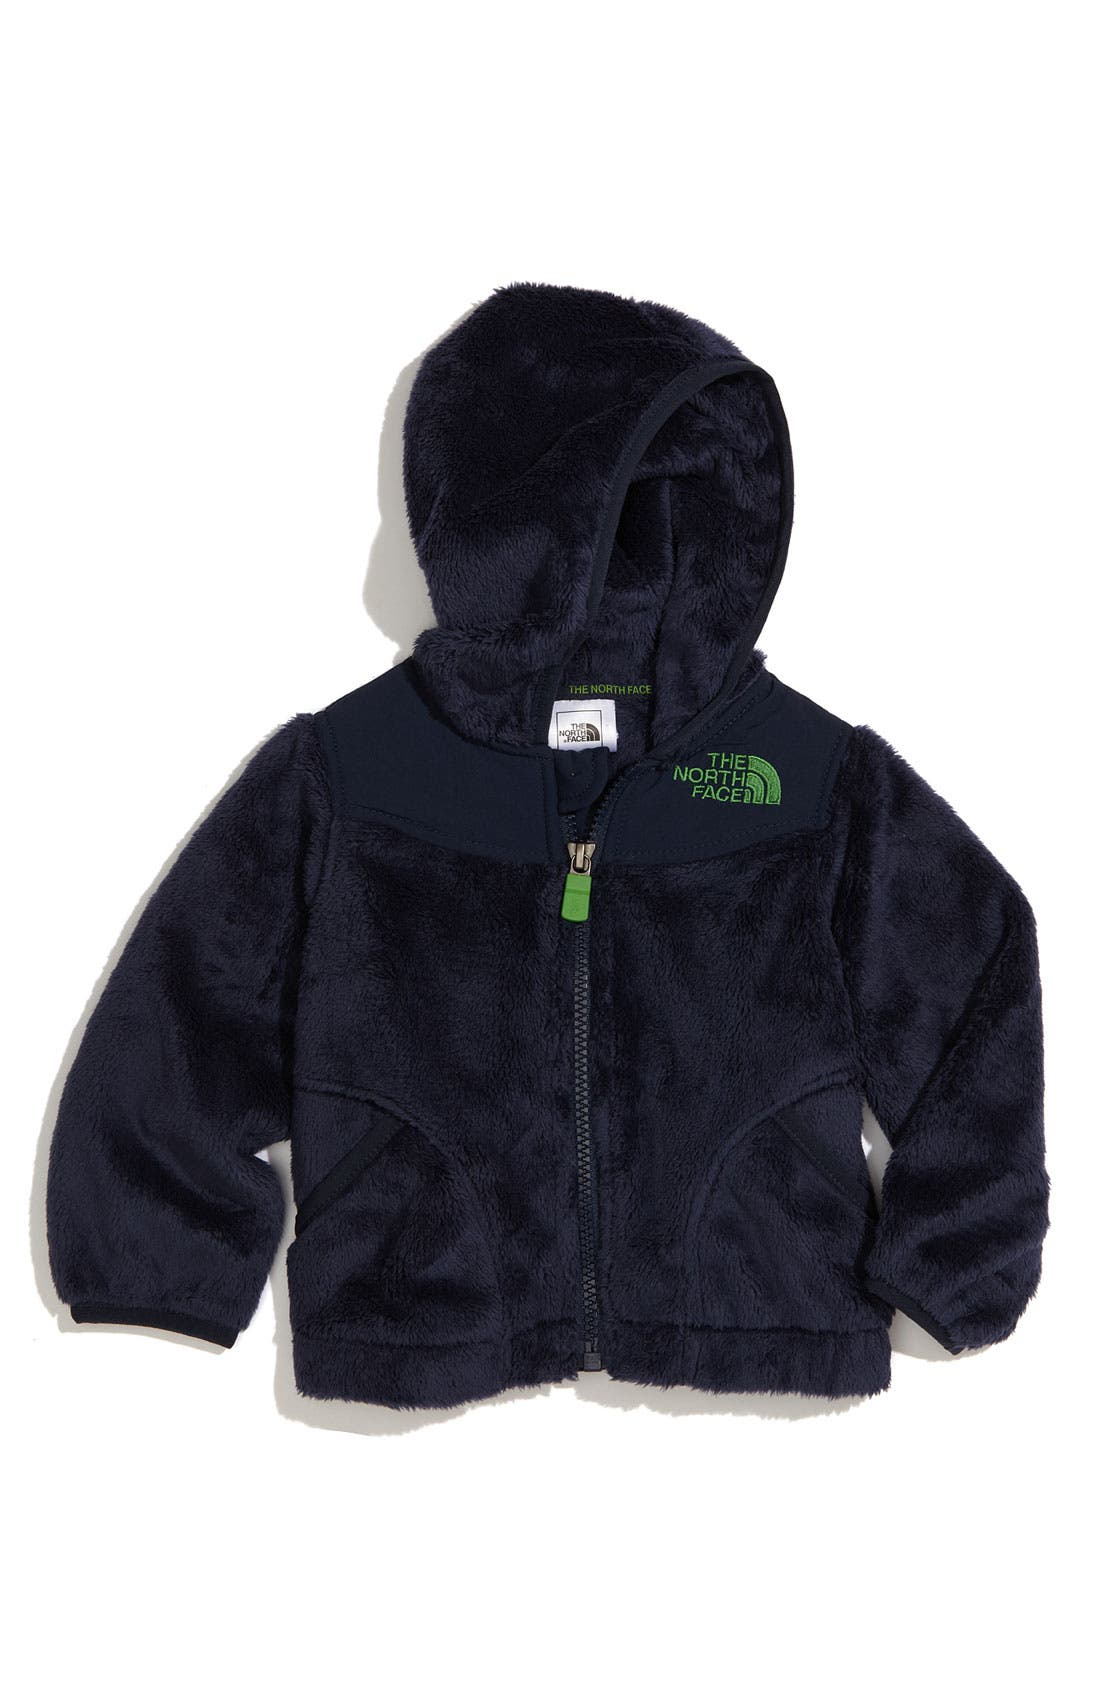 Main Image - The North Face 'Oso' Hoodie (Infant)